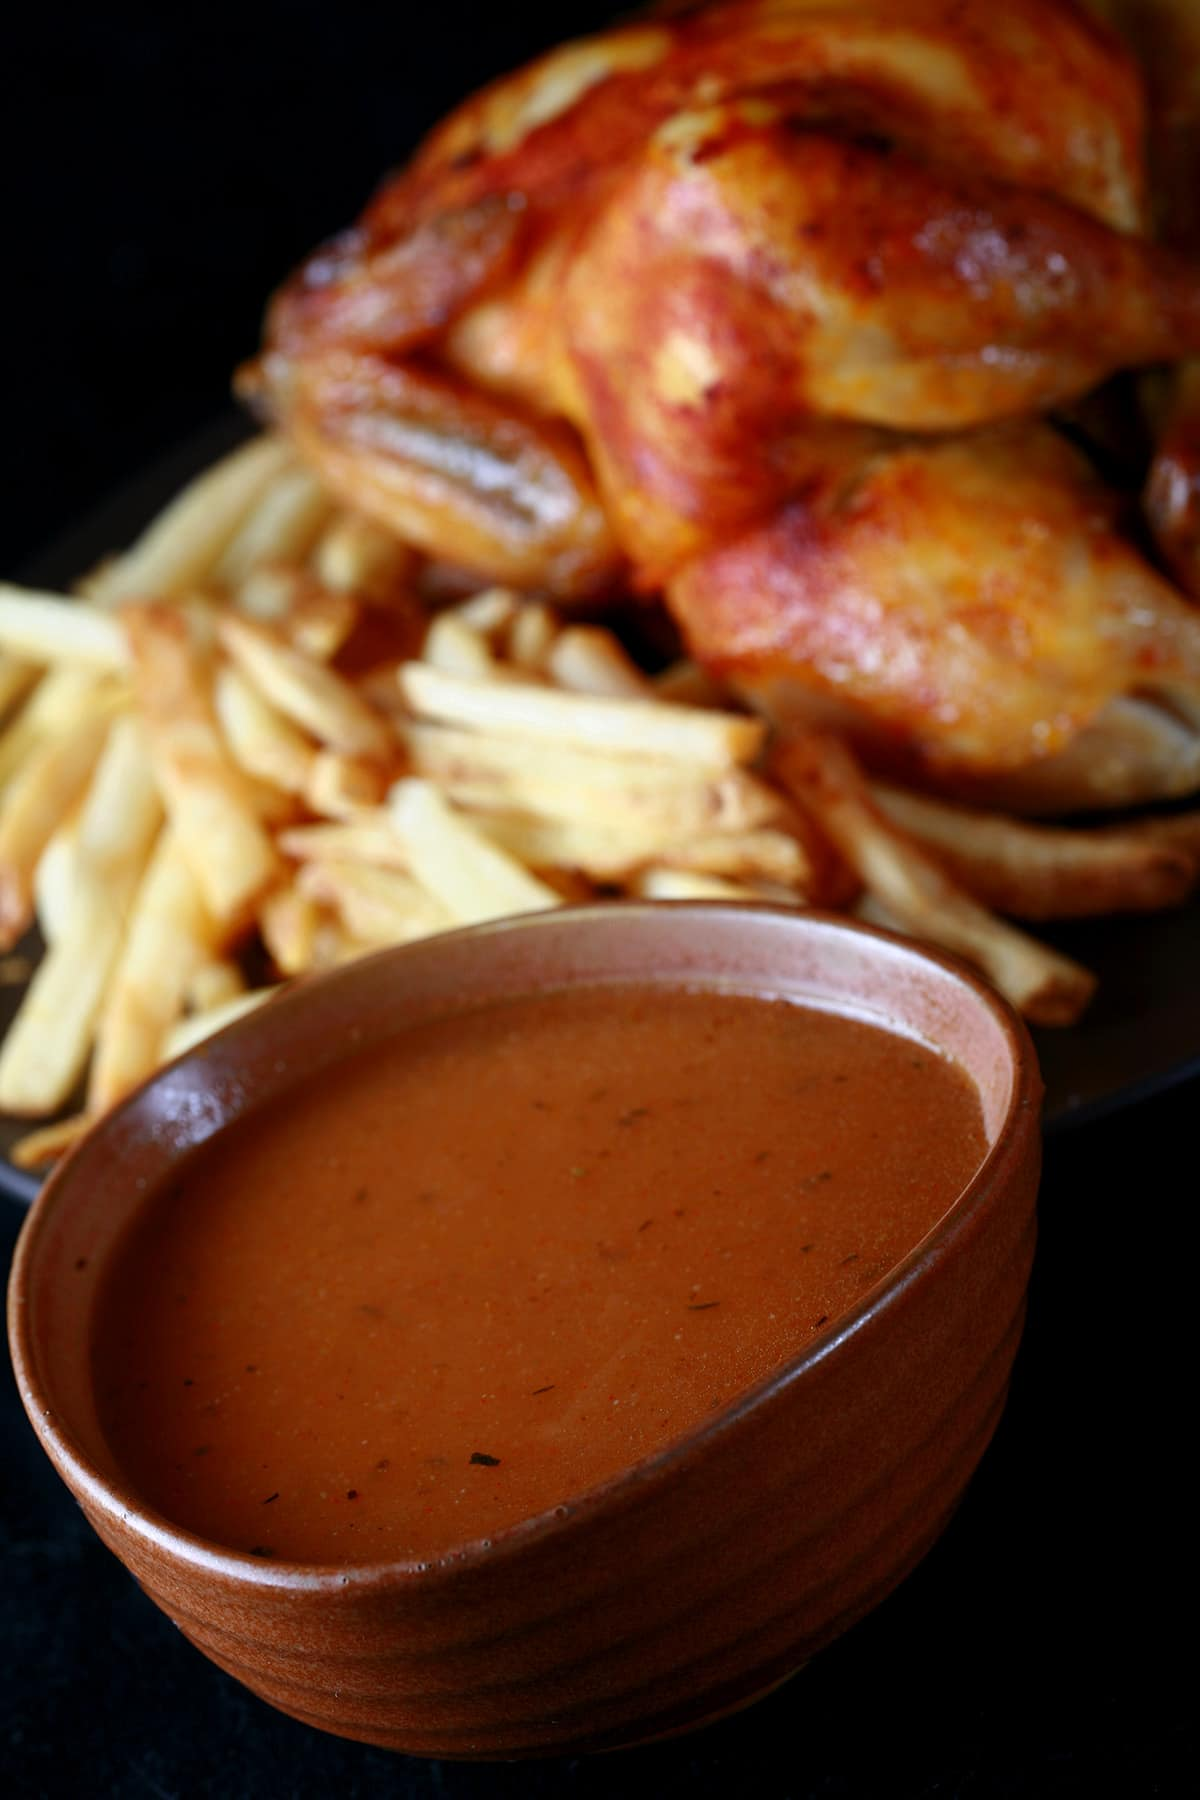 A large bowl of replica Swiss Chalet Sauce next to a roasted chicken and fries.